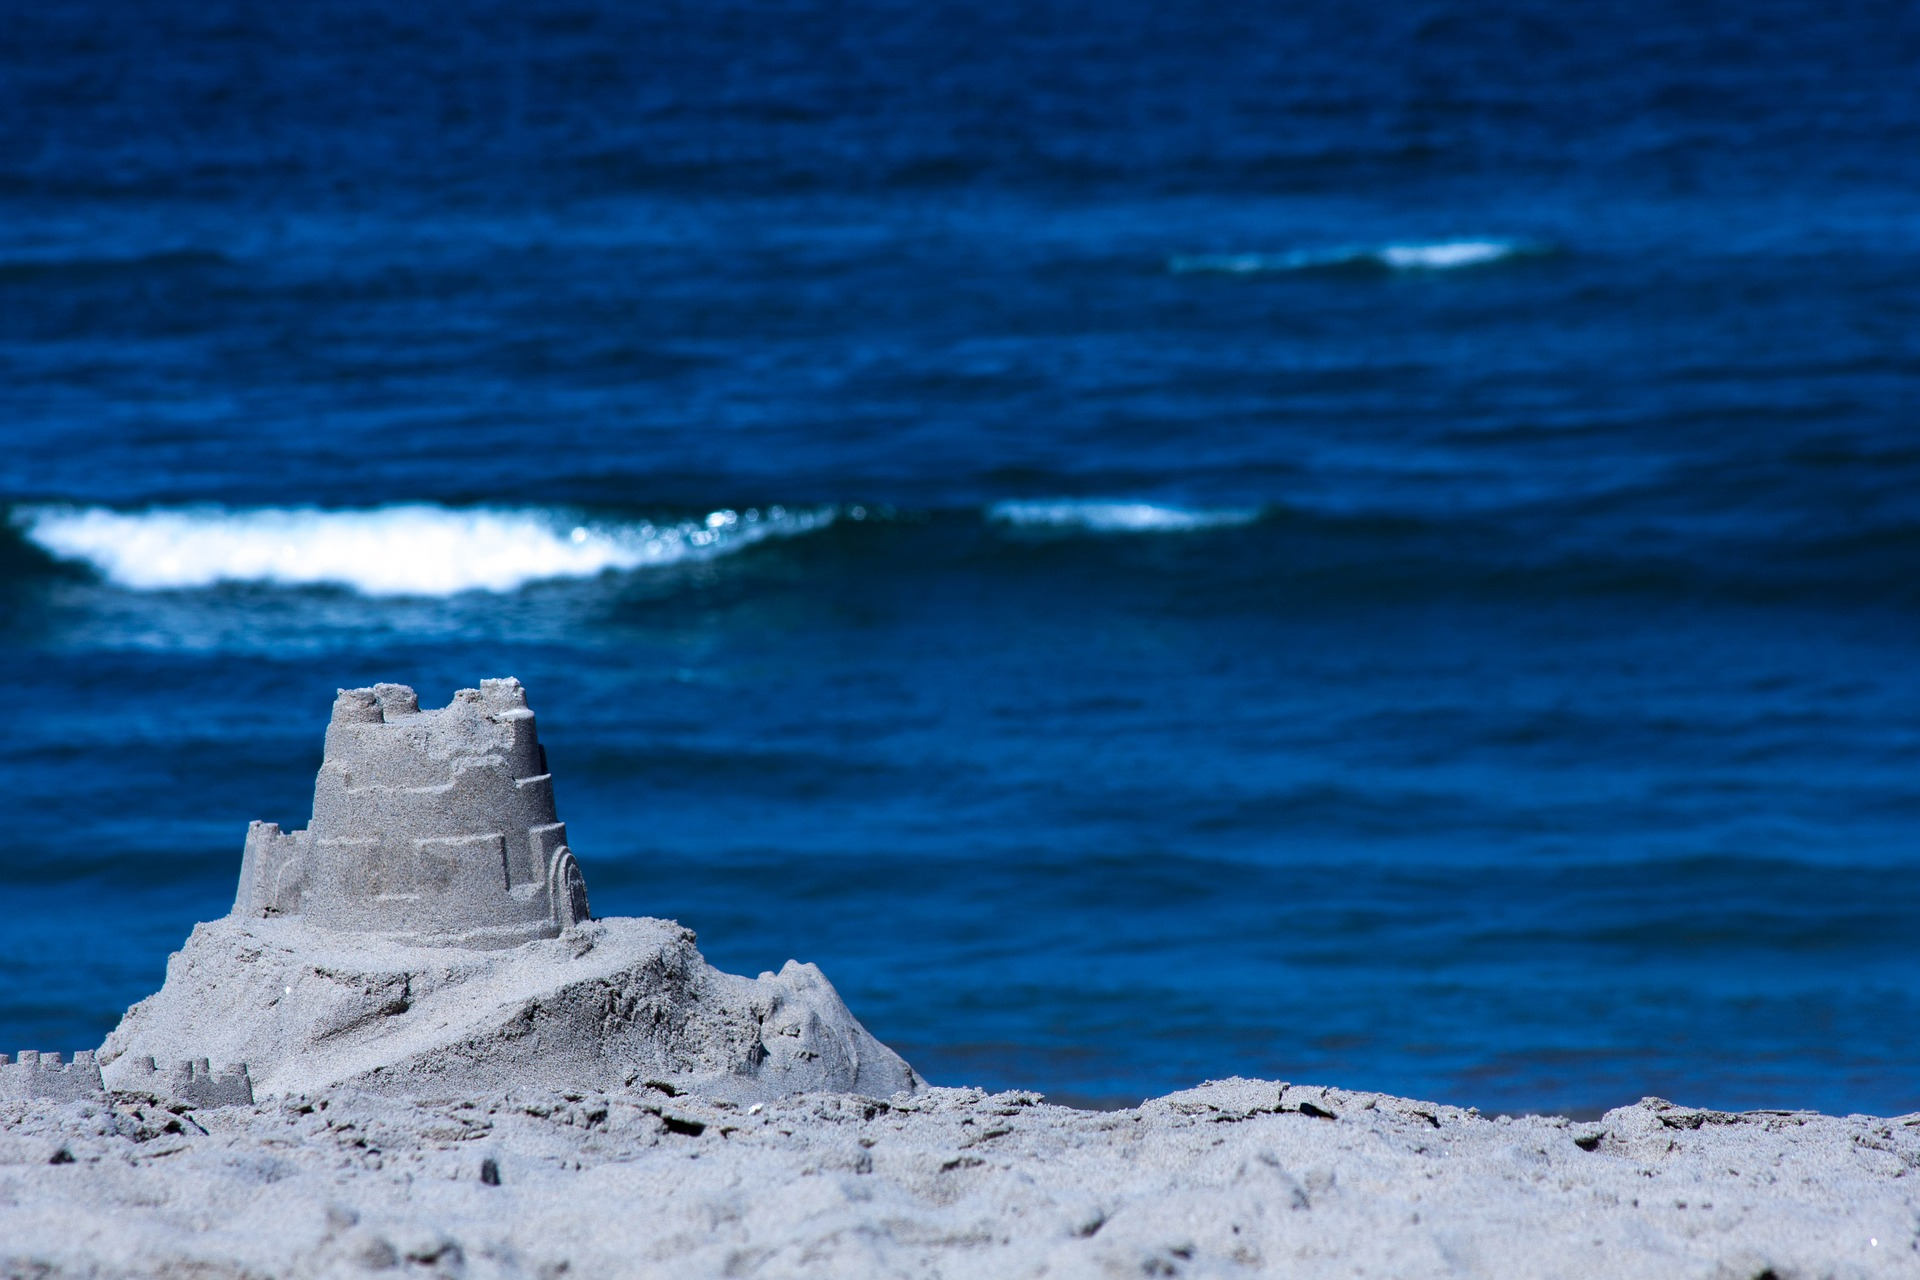 A single round sand castle with blue ocean in the background